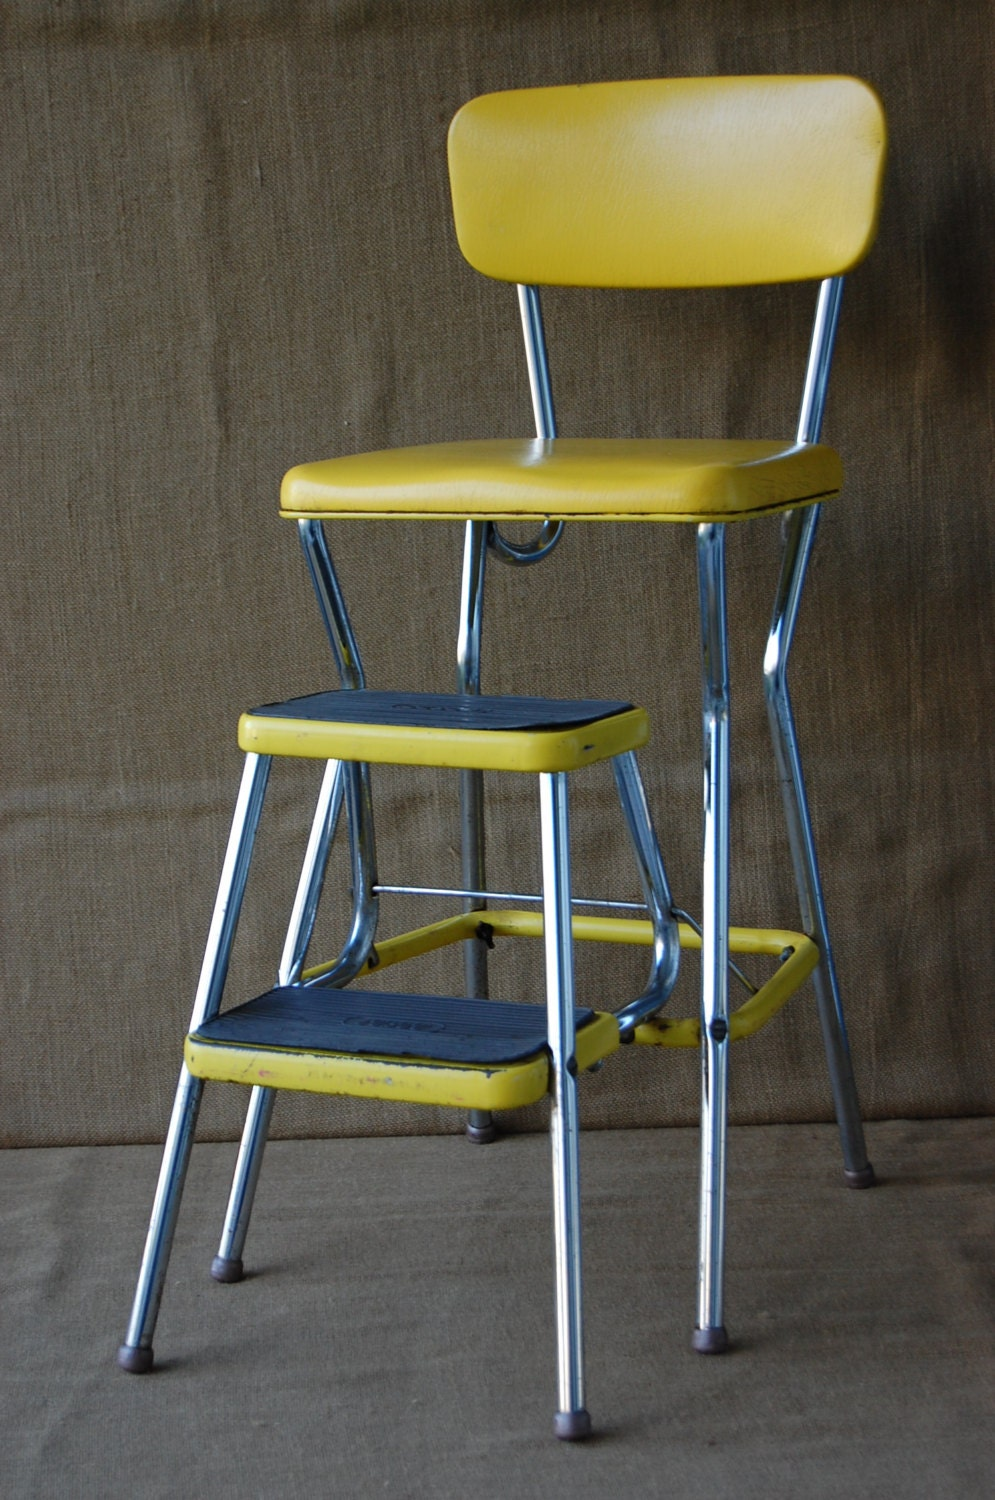 Vintage Metal Cosco Step Stool Chair Kitchen Stepstool